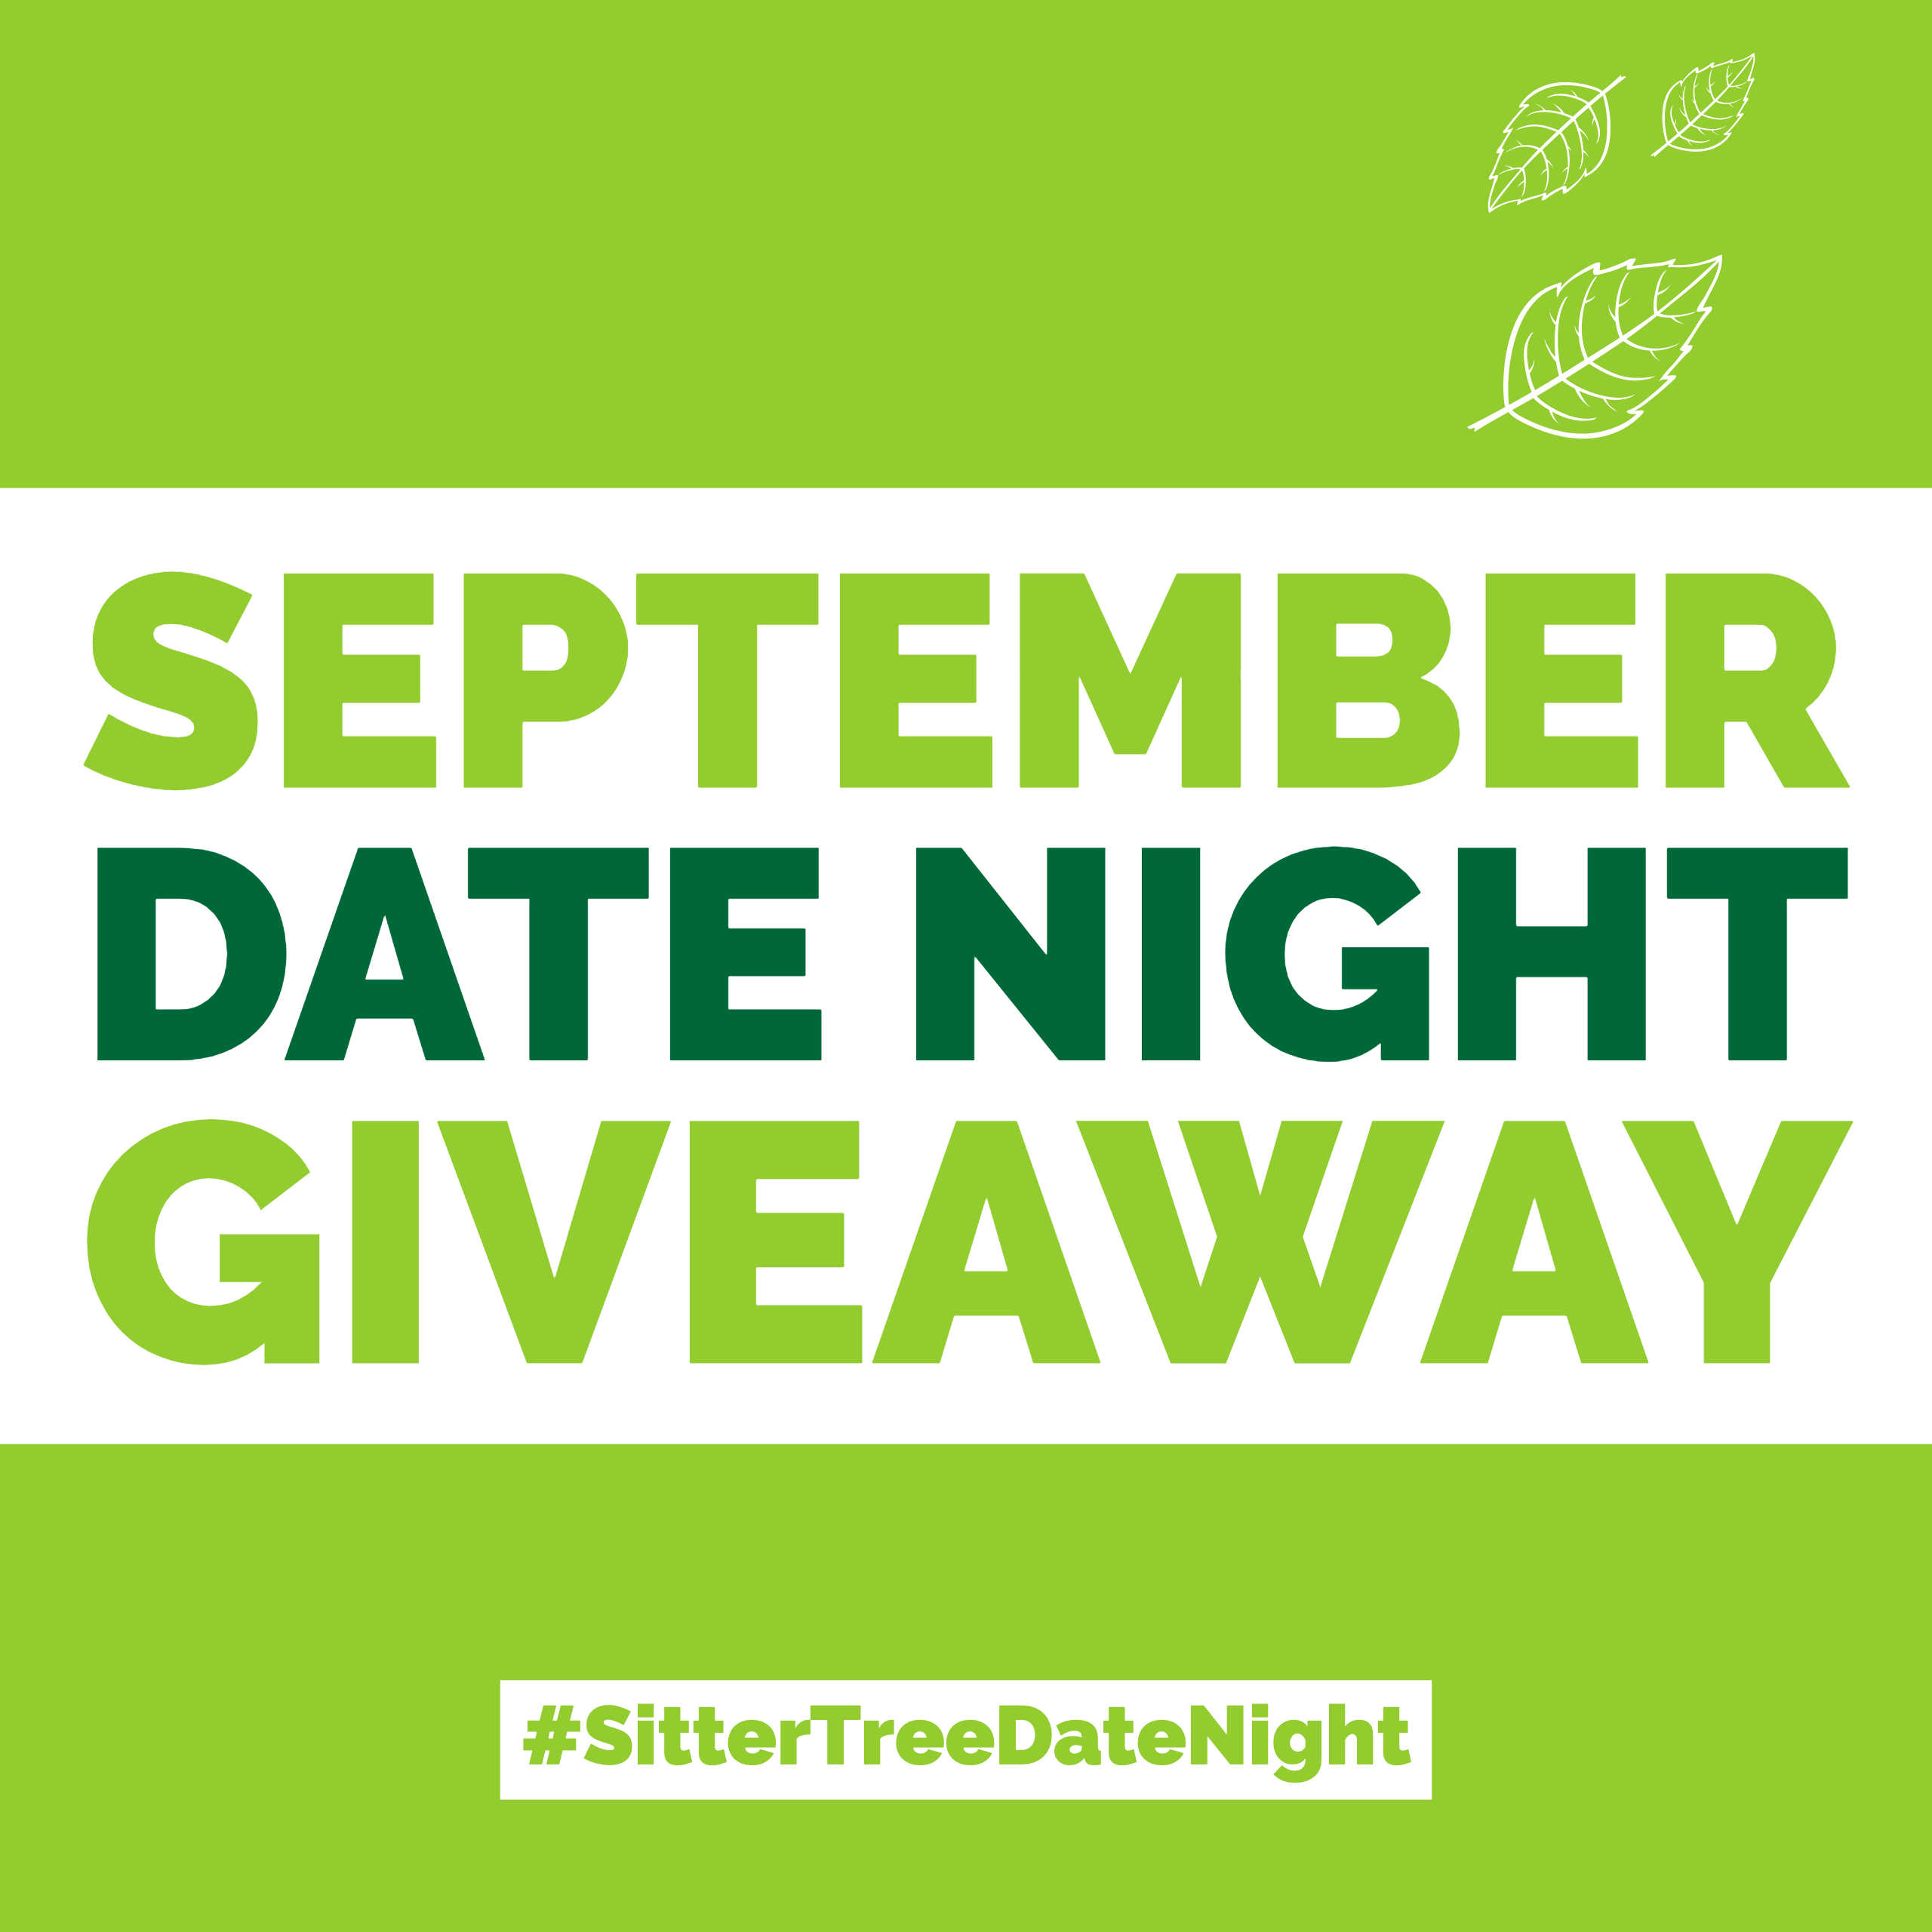 September Date Night Giveaway: FREE Babysitting + $100 Gift card